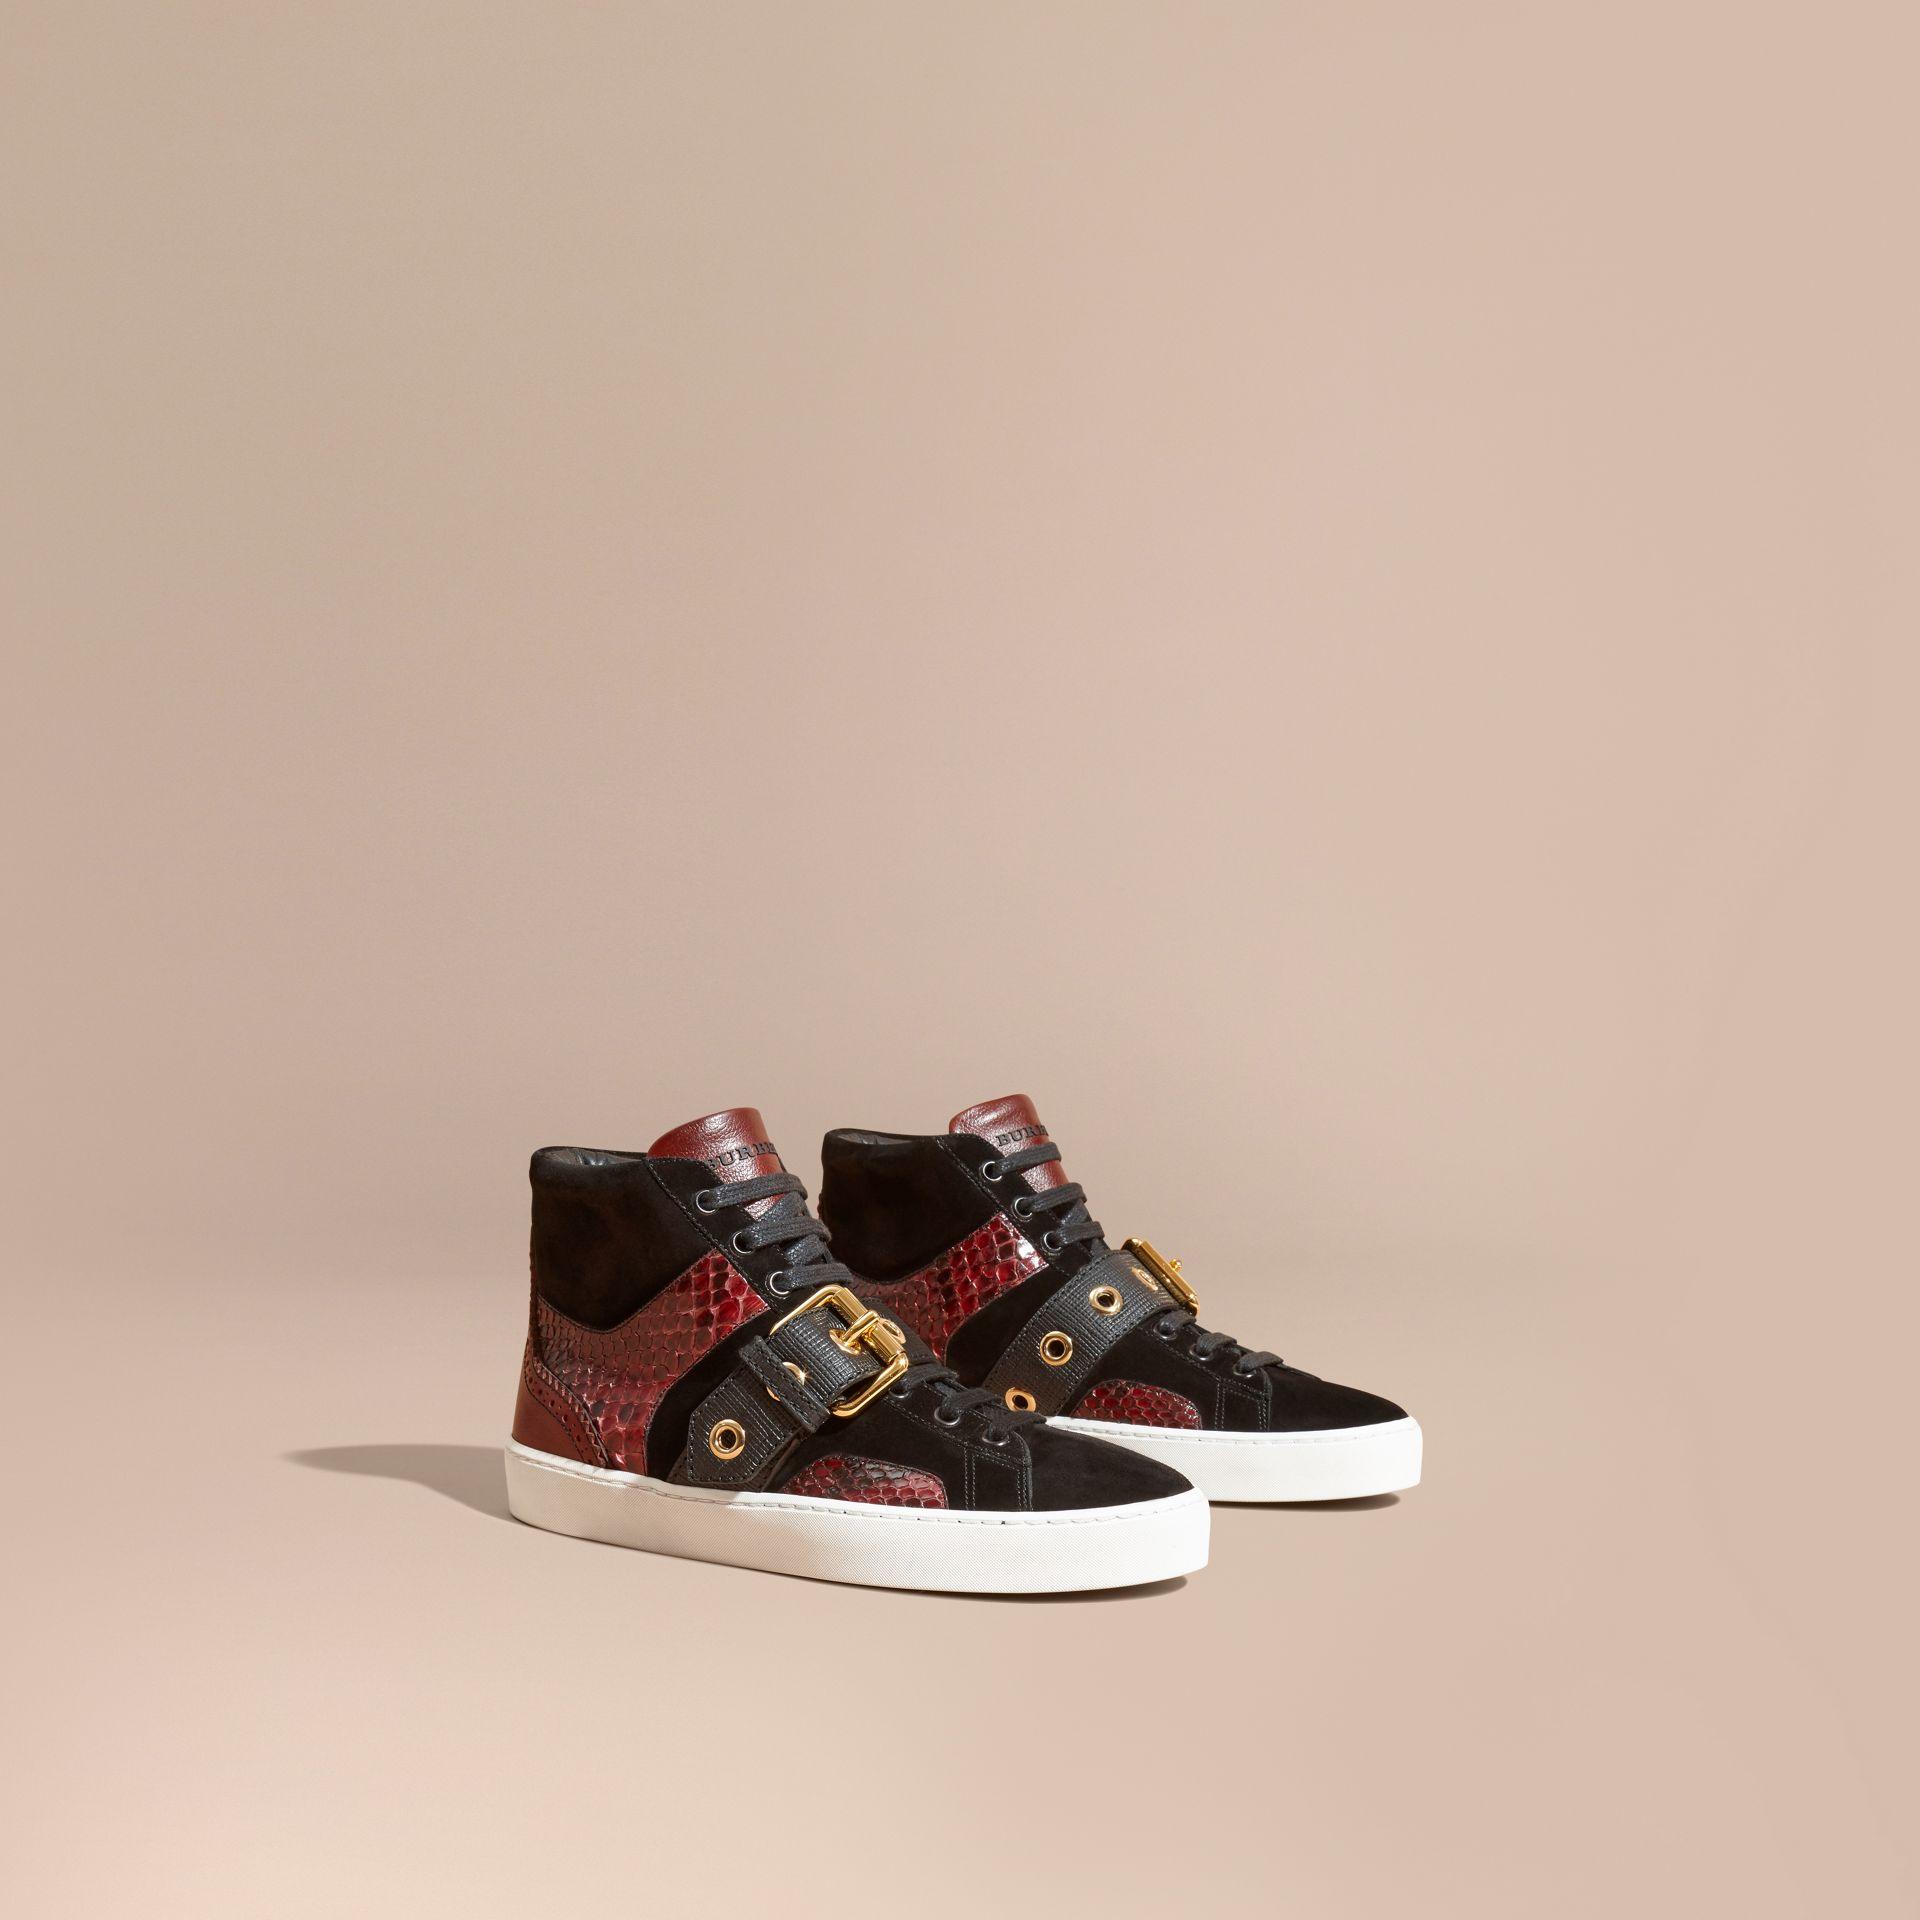 Buckle Detail Leather and Snakeskin High-top Trainers Bordeaux - gallery image 1